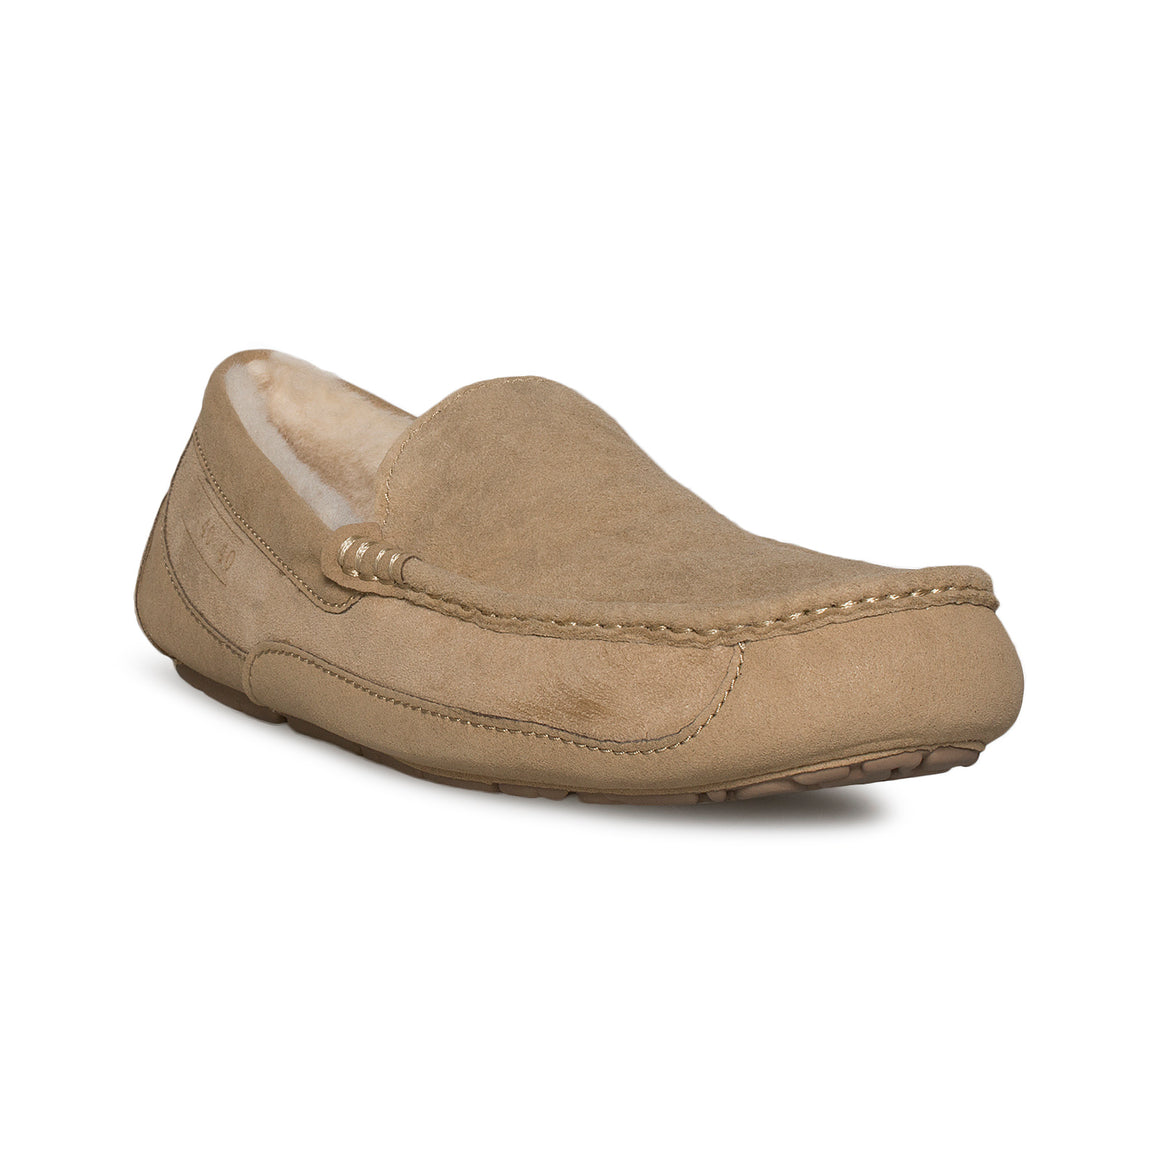 UGG Ascot 40:40:40 Sand Slippers - Men's